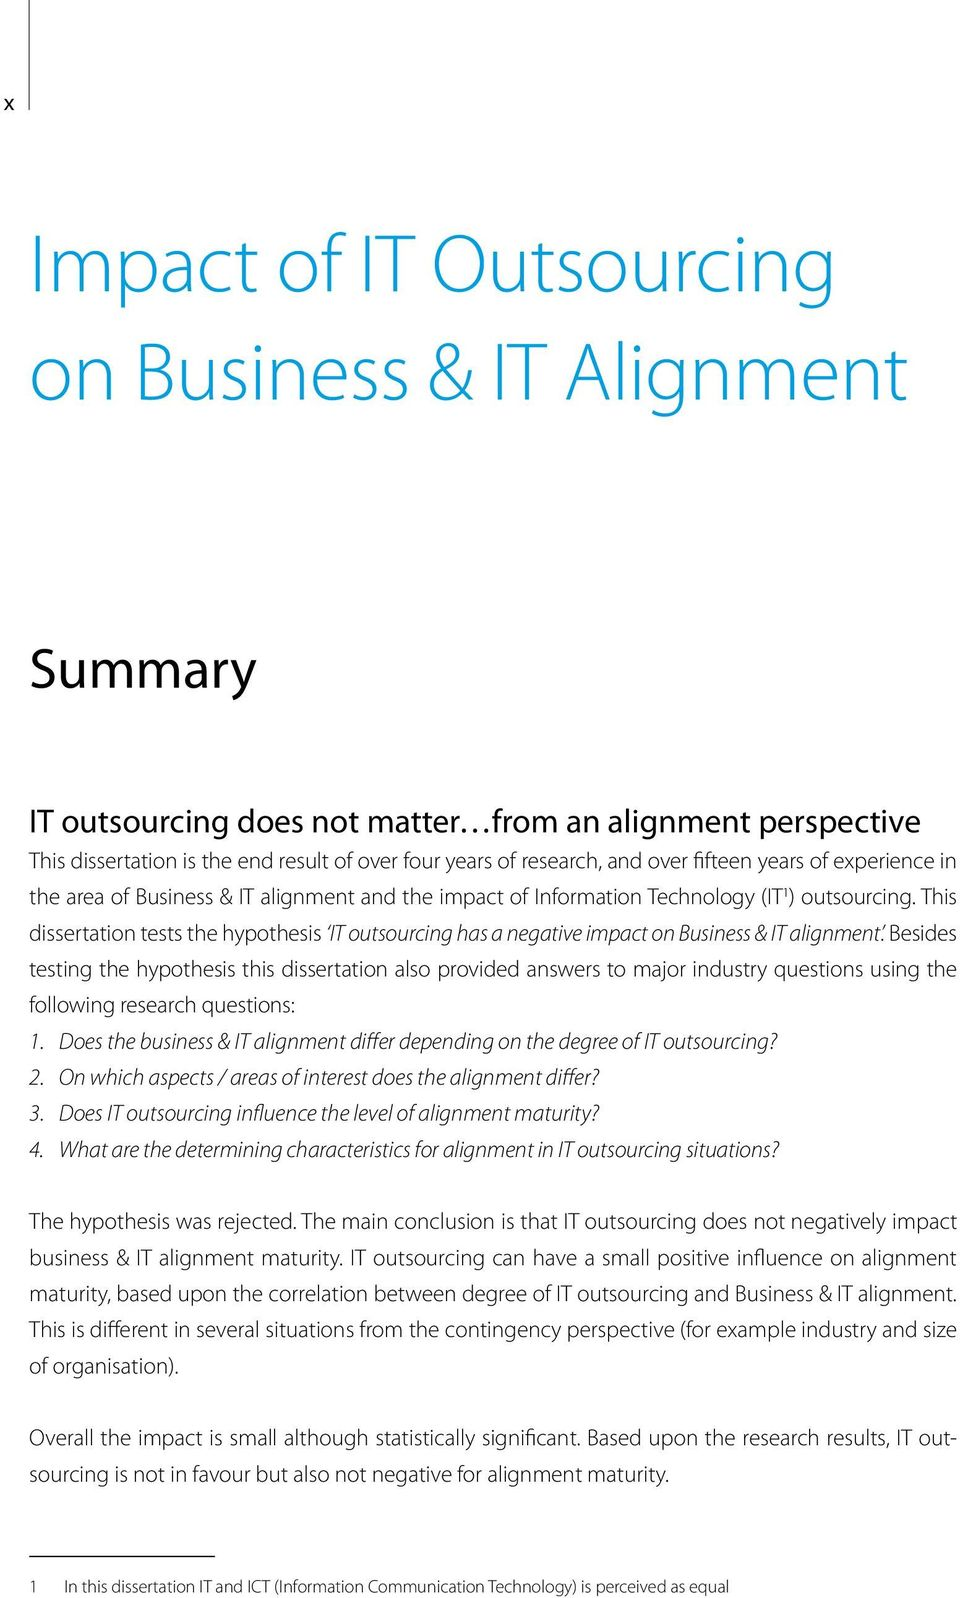 This dissertation tests the hypothesis IT outsourcing has a negative impact on Business & IT alignment.